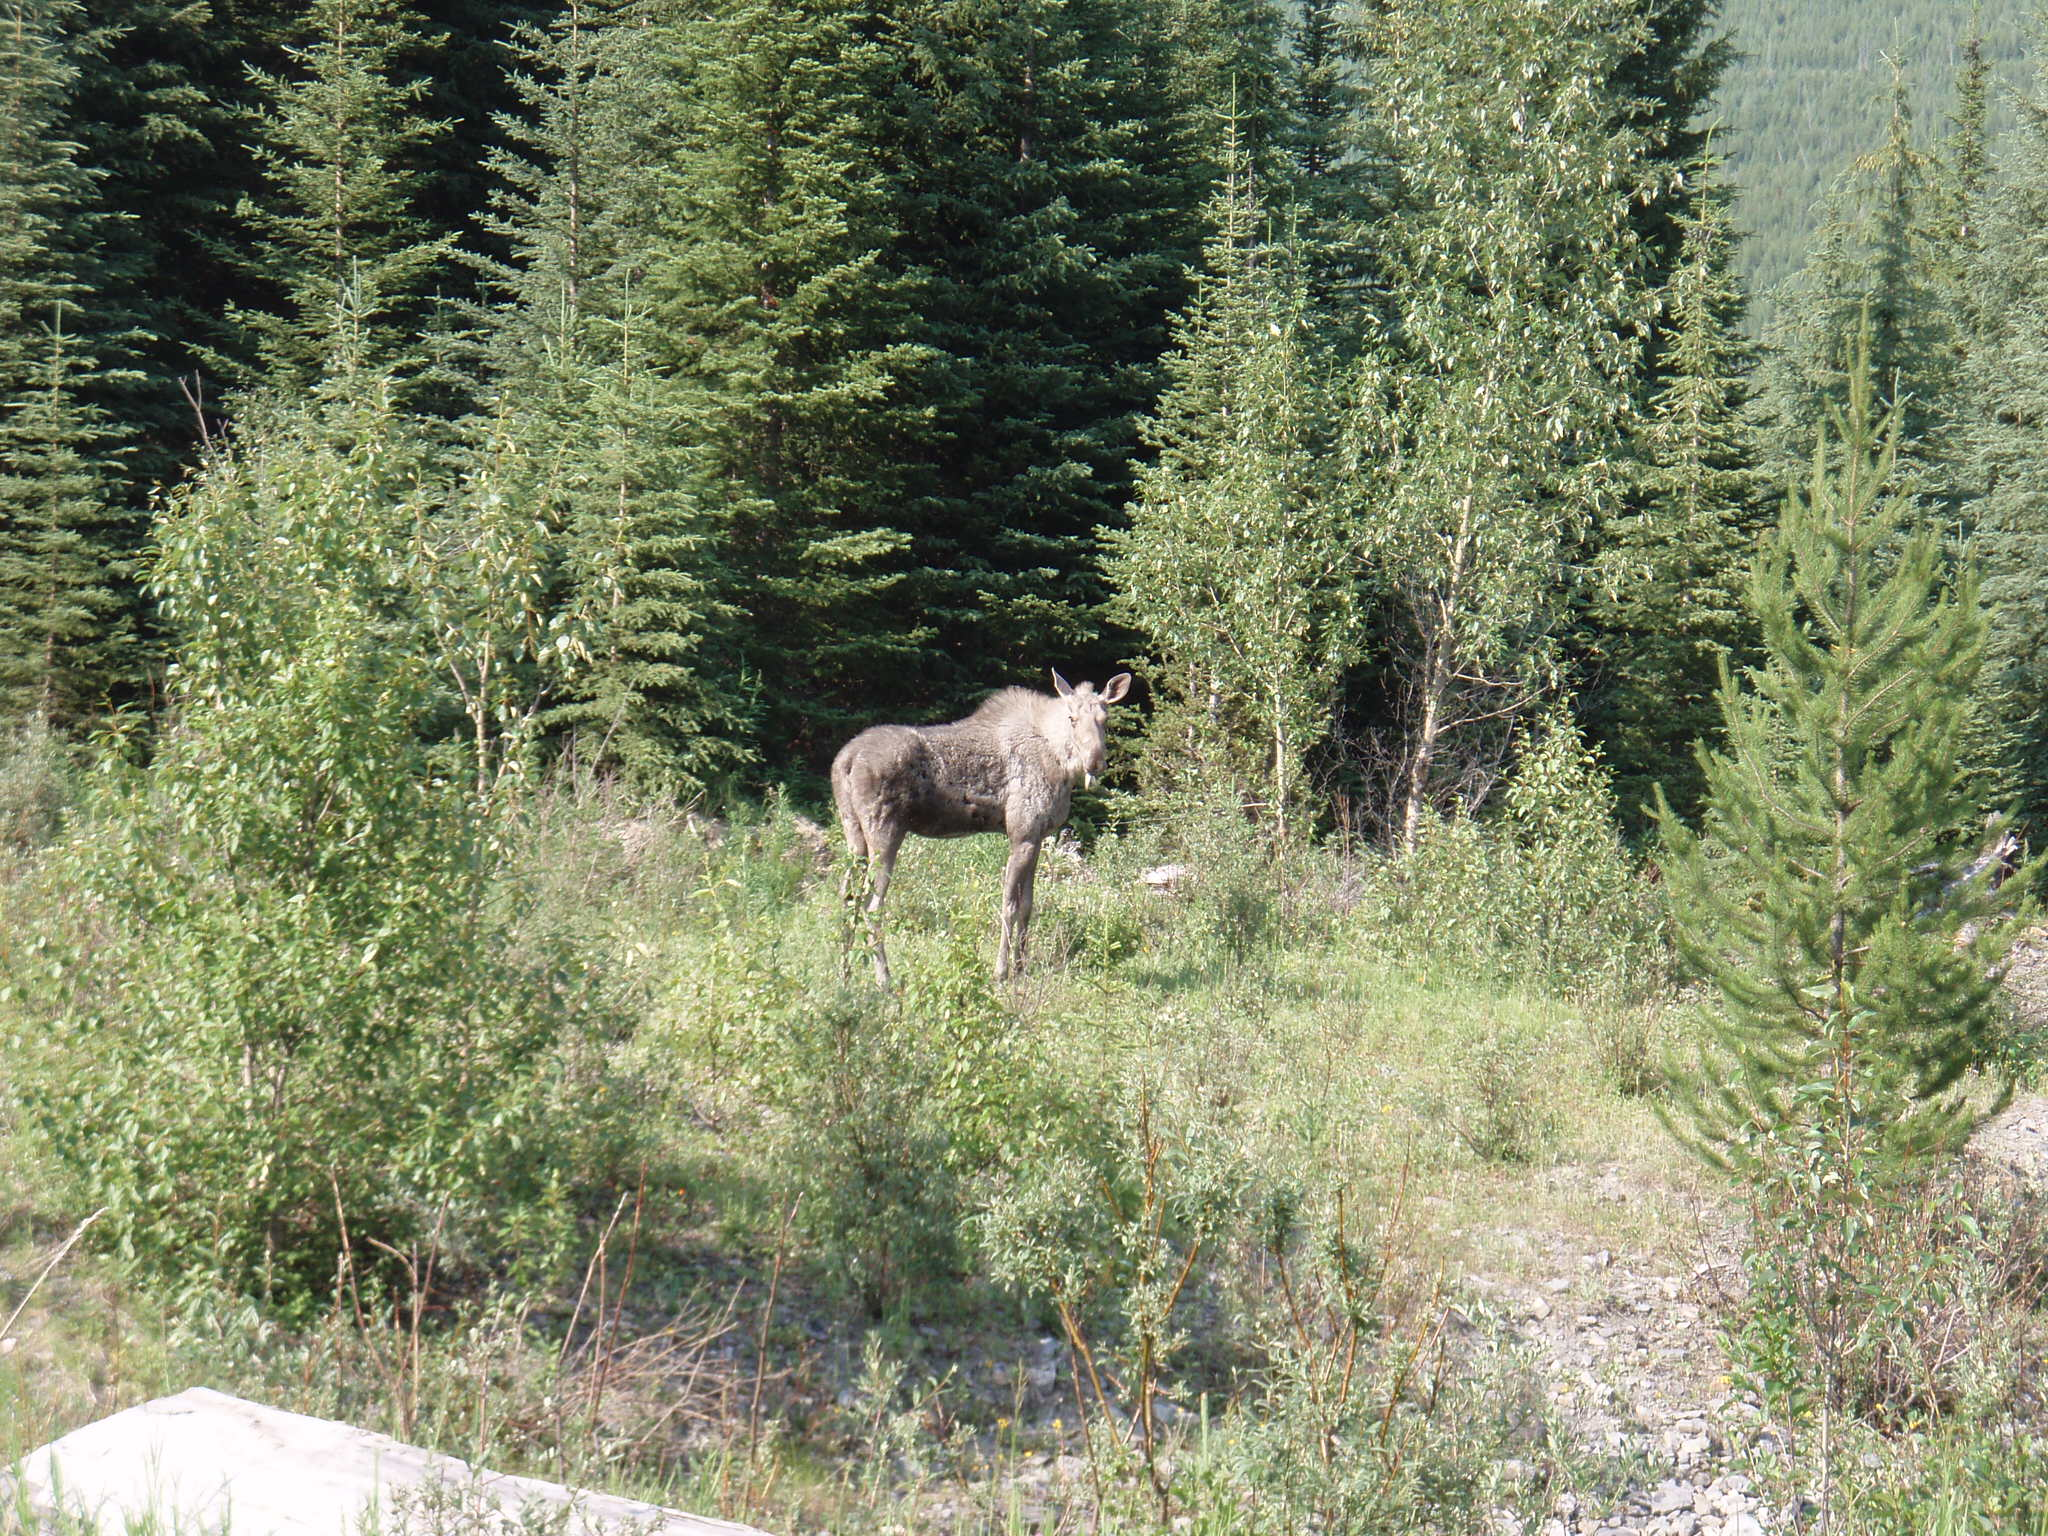 Moose (Alces alces) can also be found in the Flathead valley